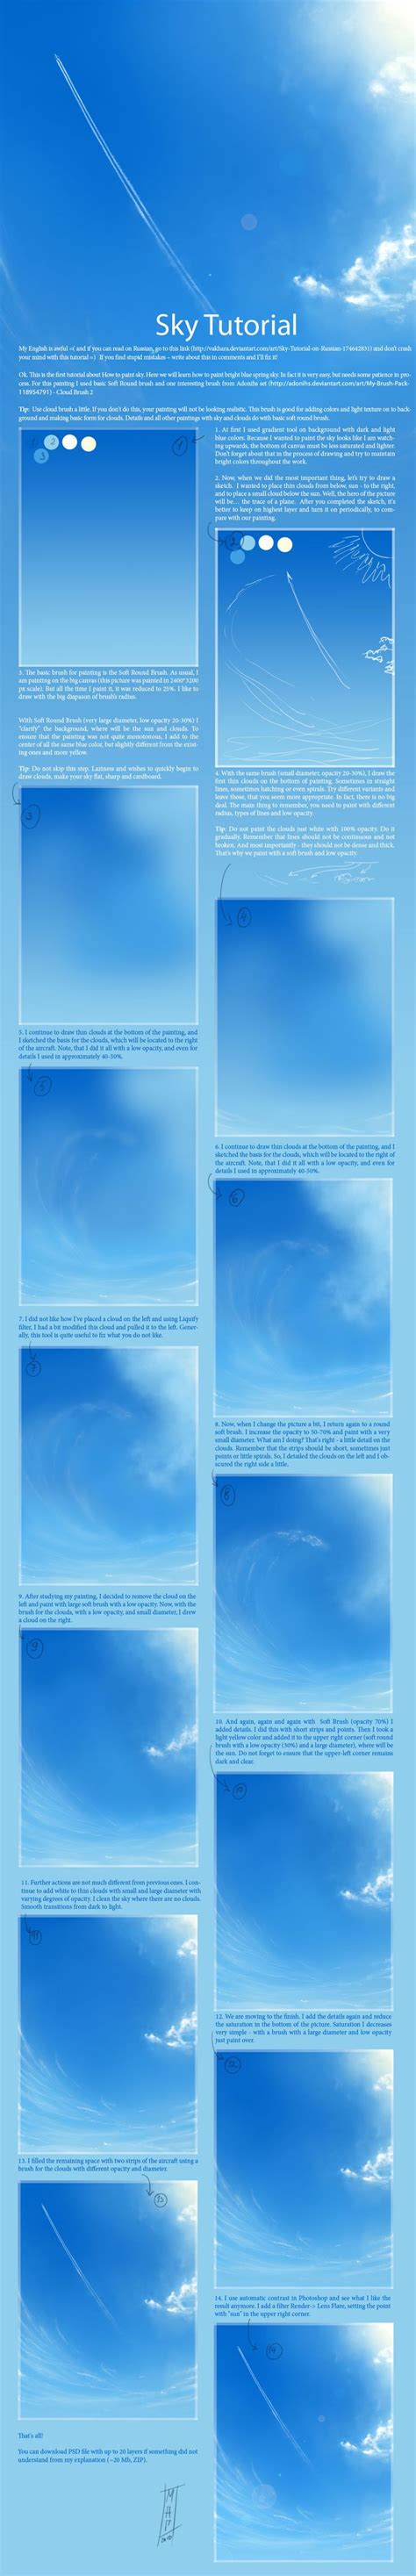 soil pattern coreldraw 114 best images about tutorials on pinterest drawings